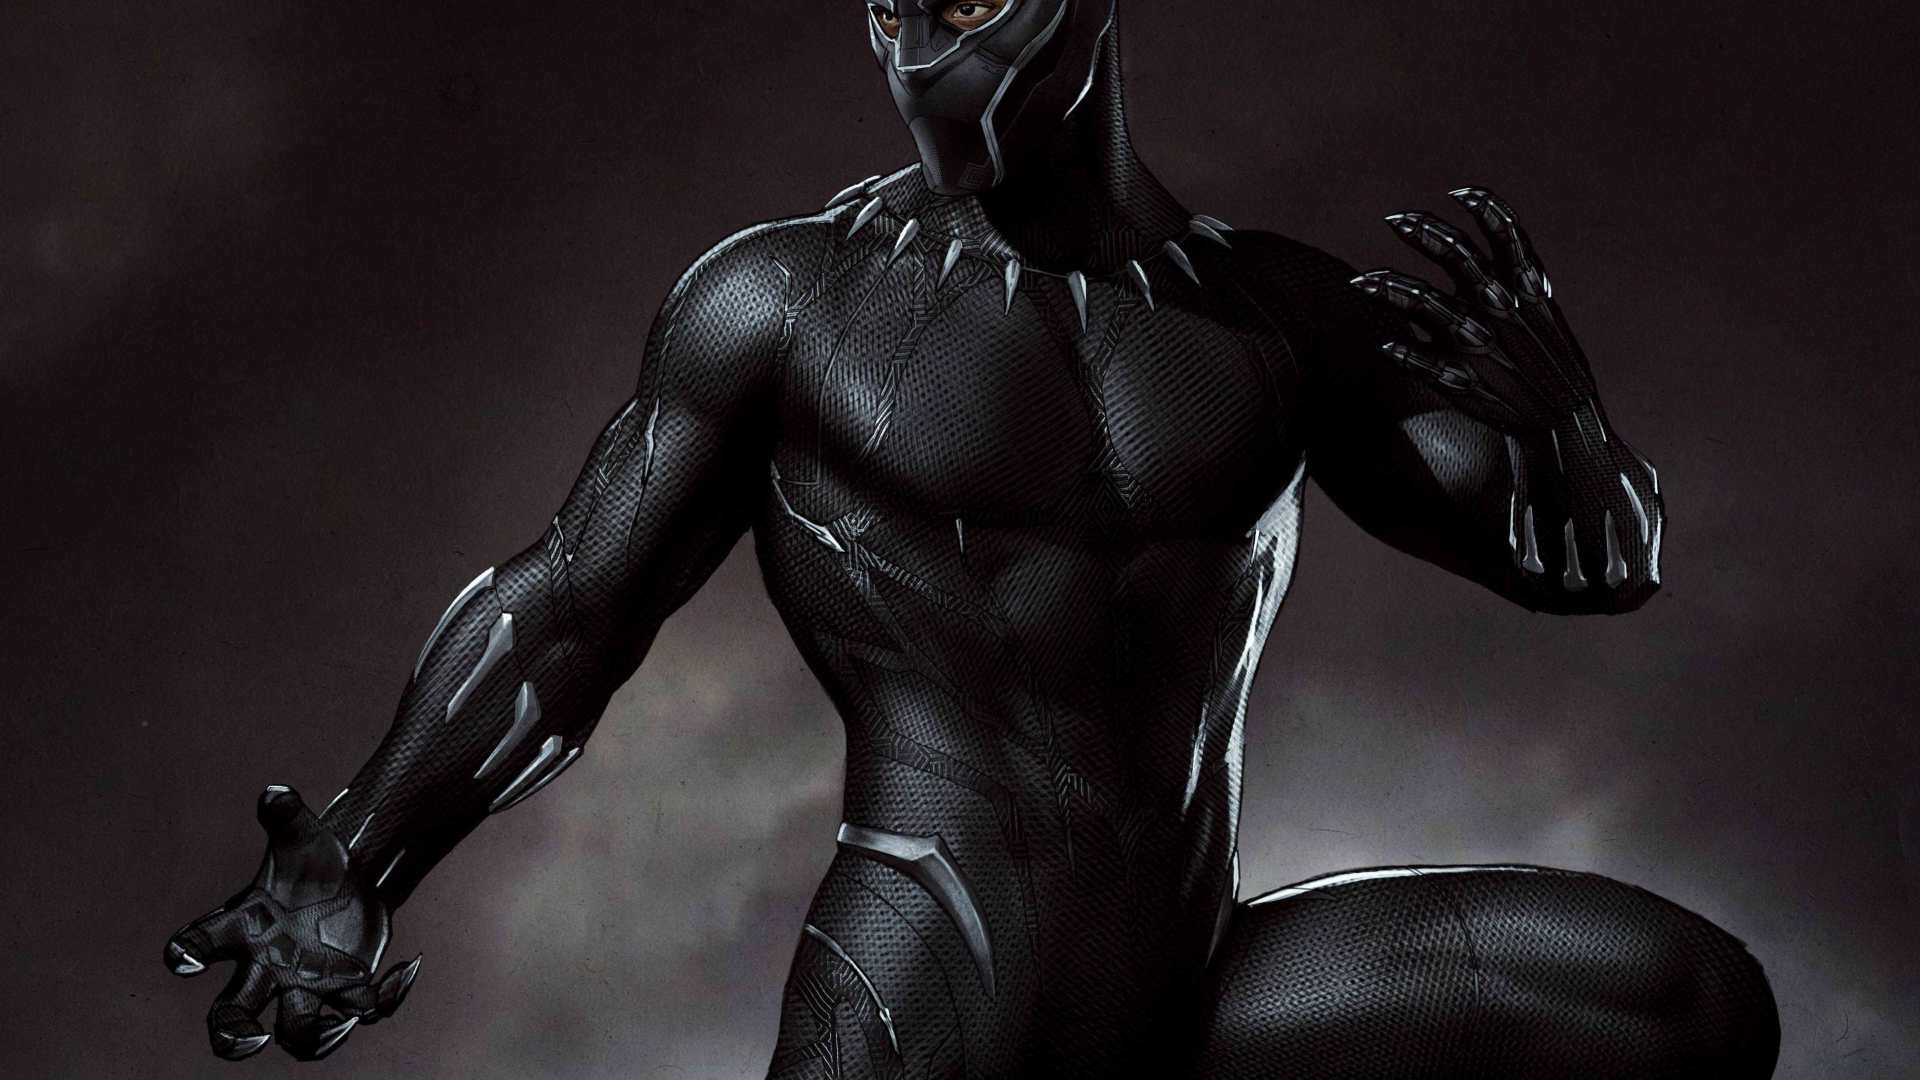 1920x1080 Marvel Black Panther Artwork 1080p Laptop Full Hd